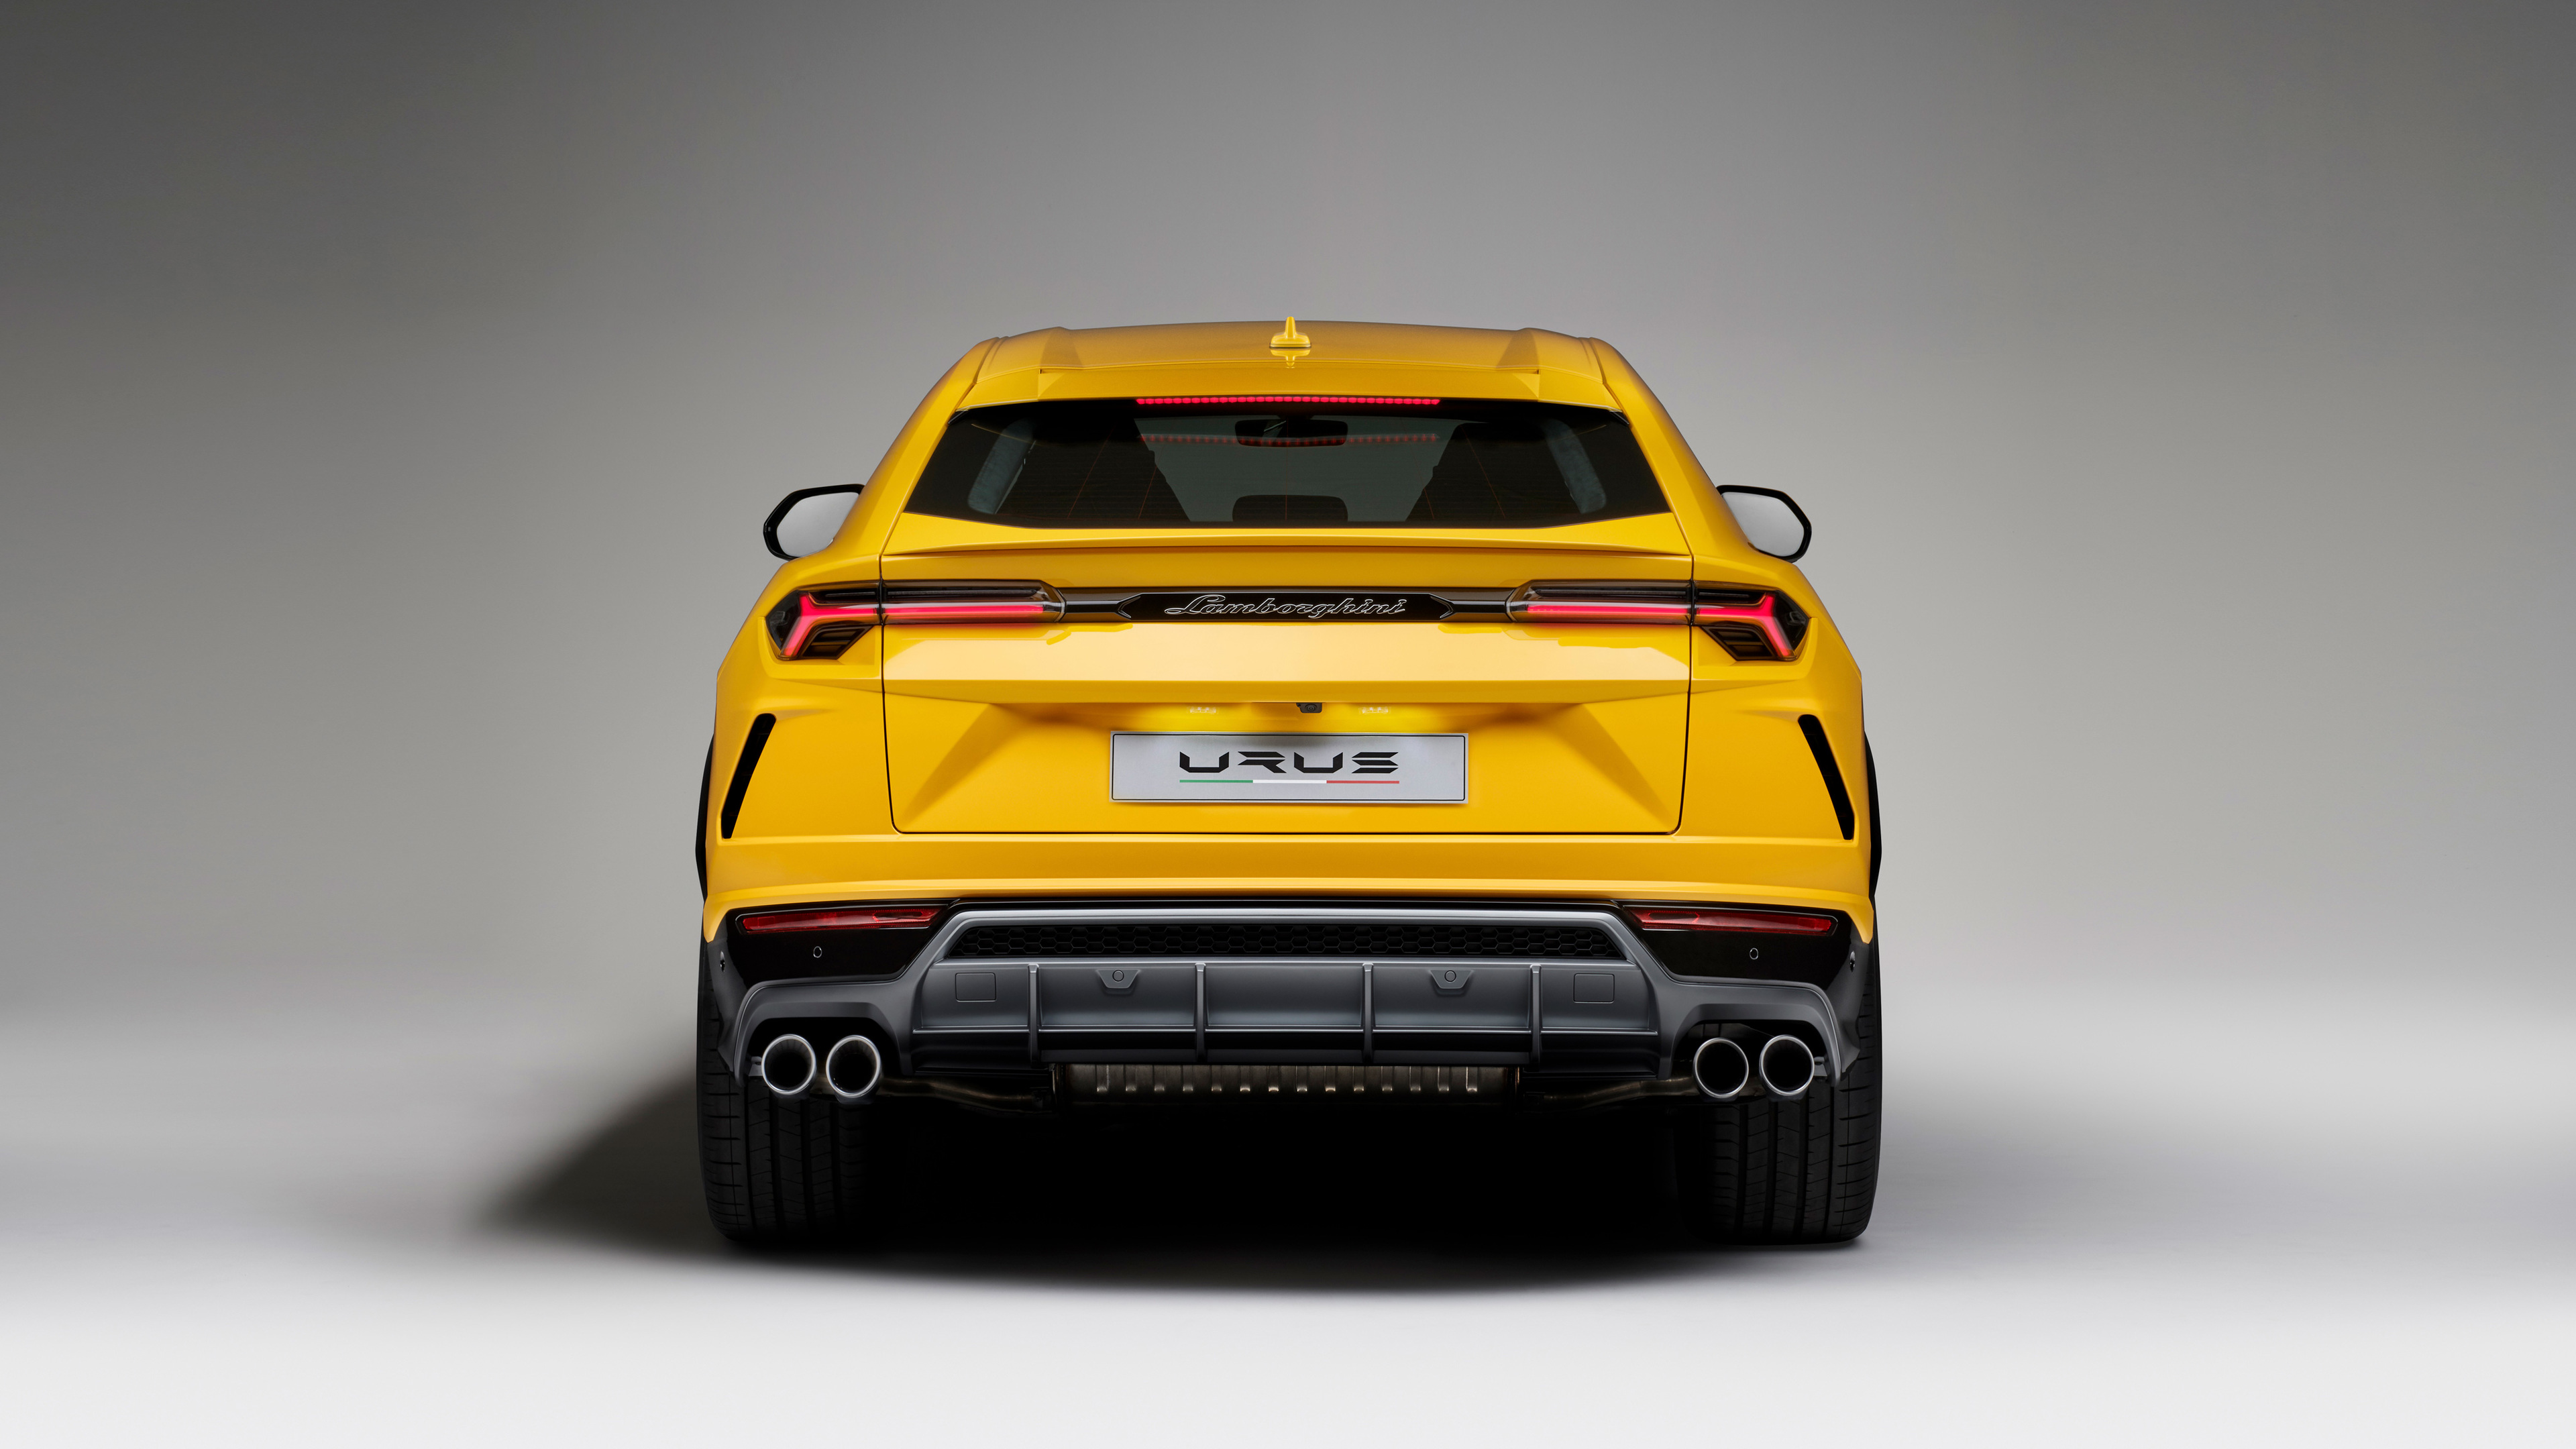 lamborghini urus rear side 1539108511 - Lamborghini Urus Rear Side - suv wallpapers, lamborghini wallpapers, lamborghini urus wallpapers, hd-wallpapers, cars wallpapers, 4k-wallpapers, 2018 cars wallpapers